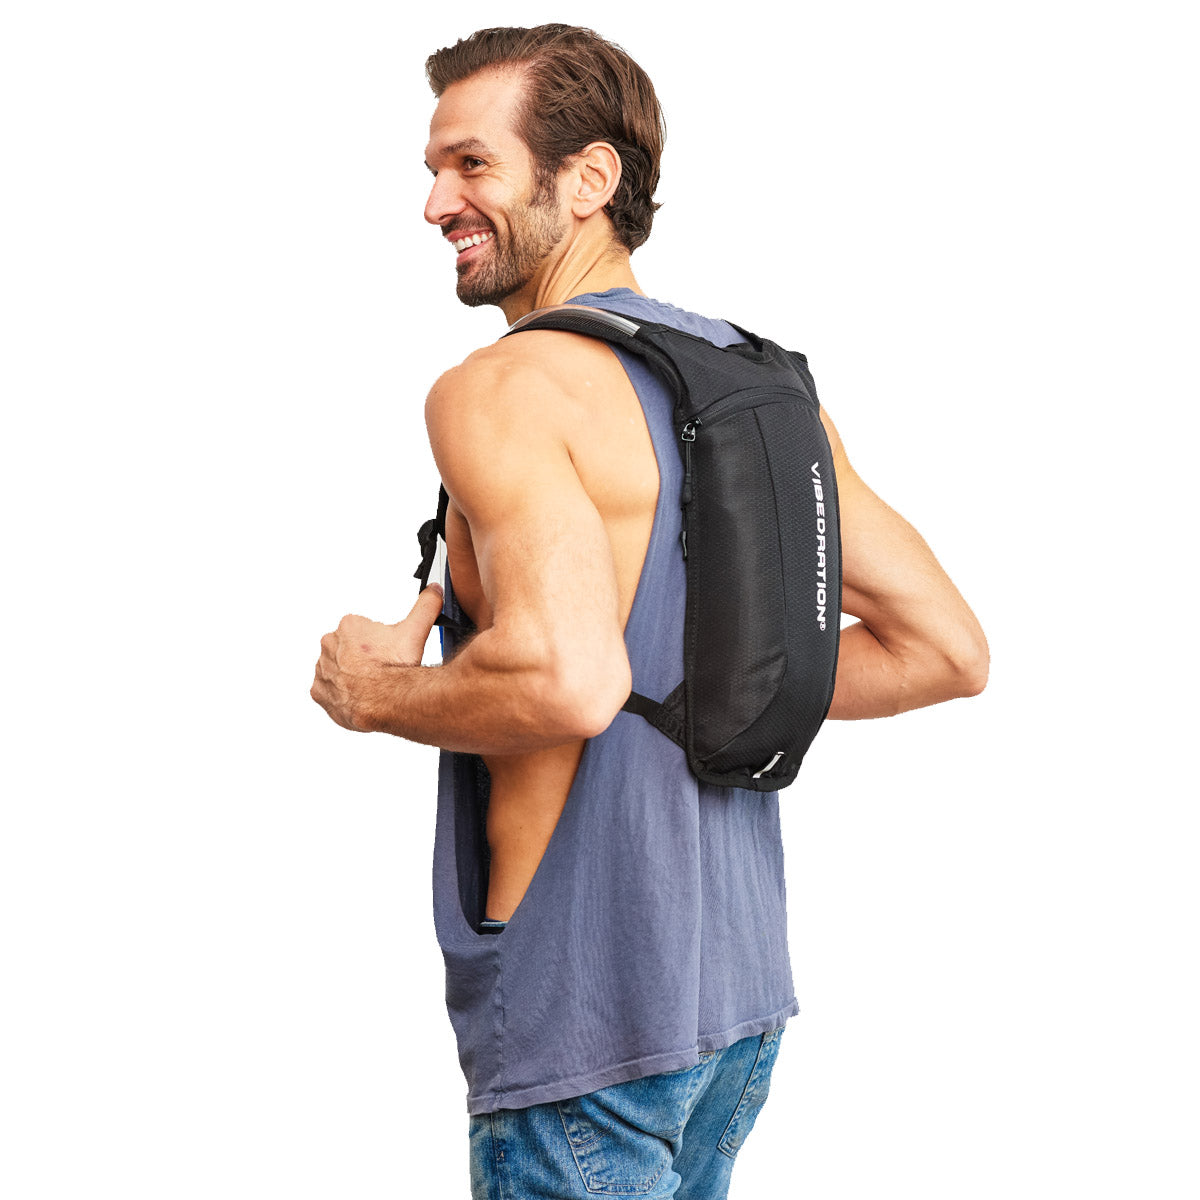 Side view of Male wearing single pocket black hydration pack